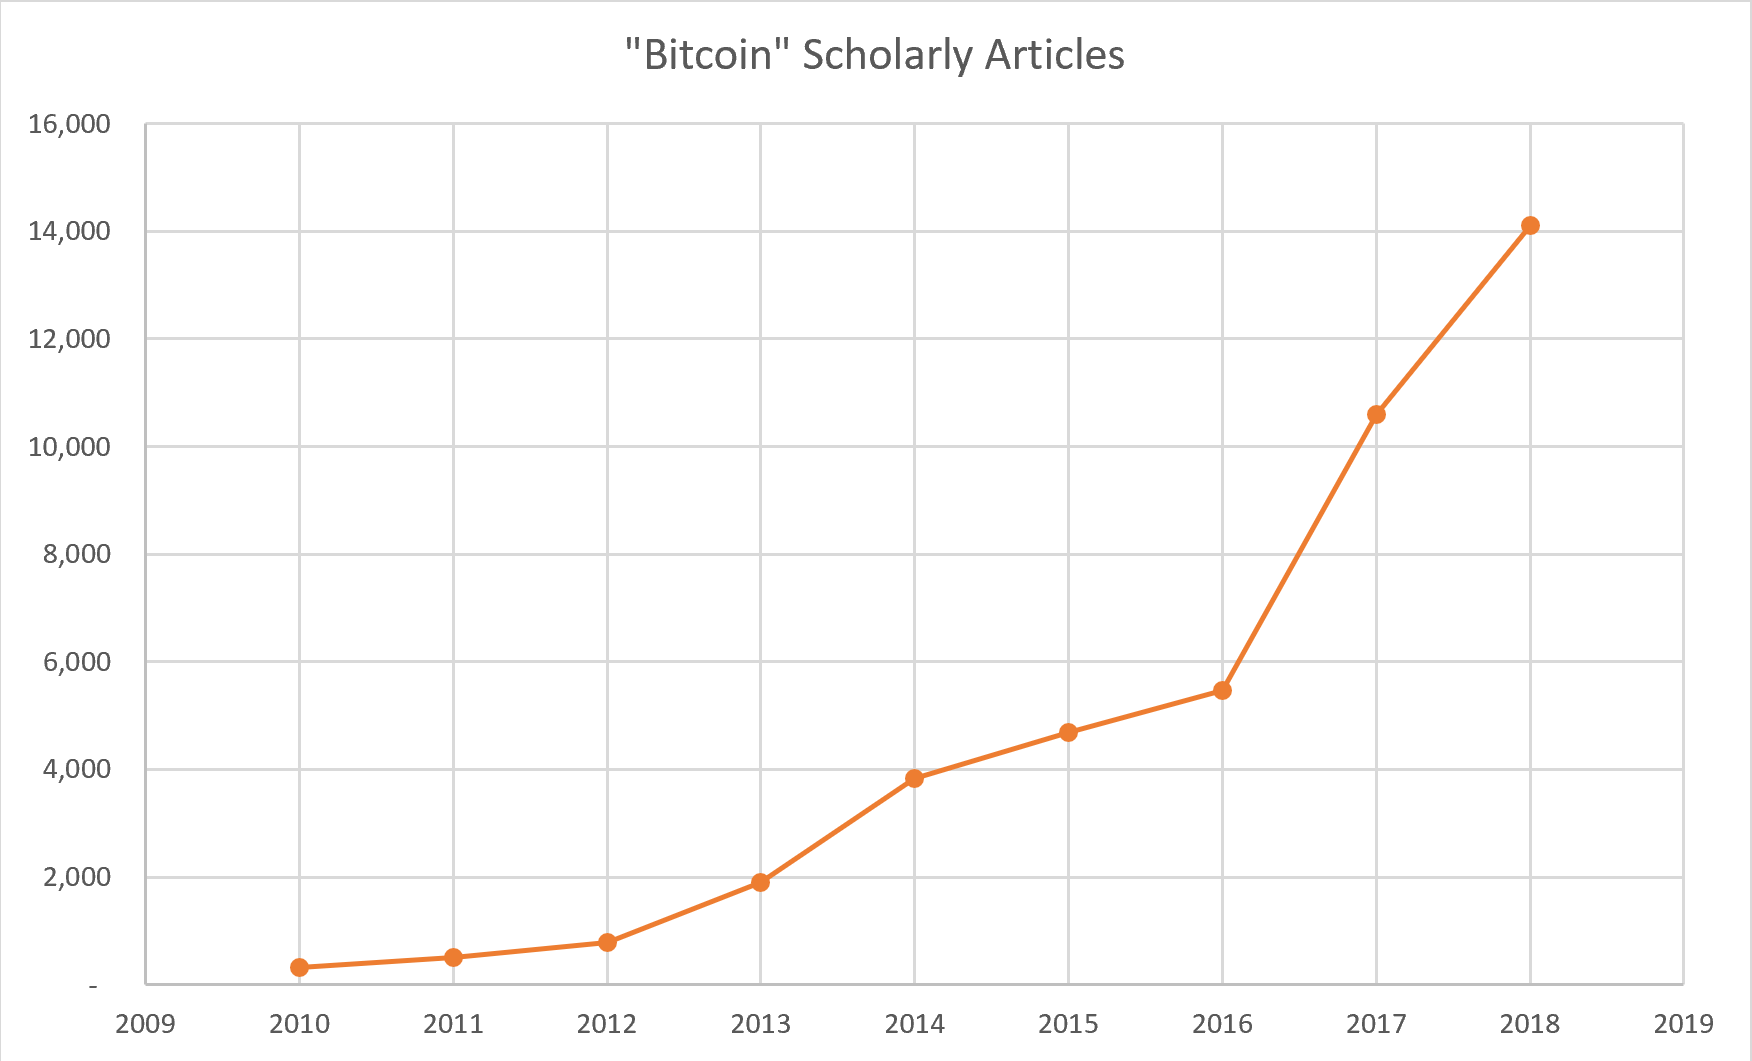 Bitcoin Scholarly Articles